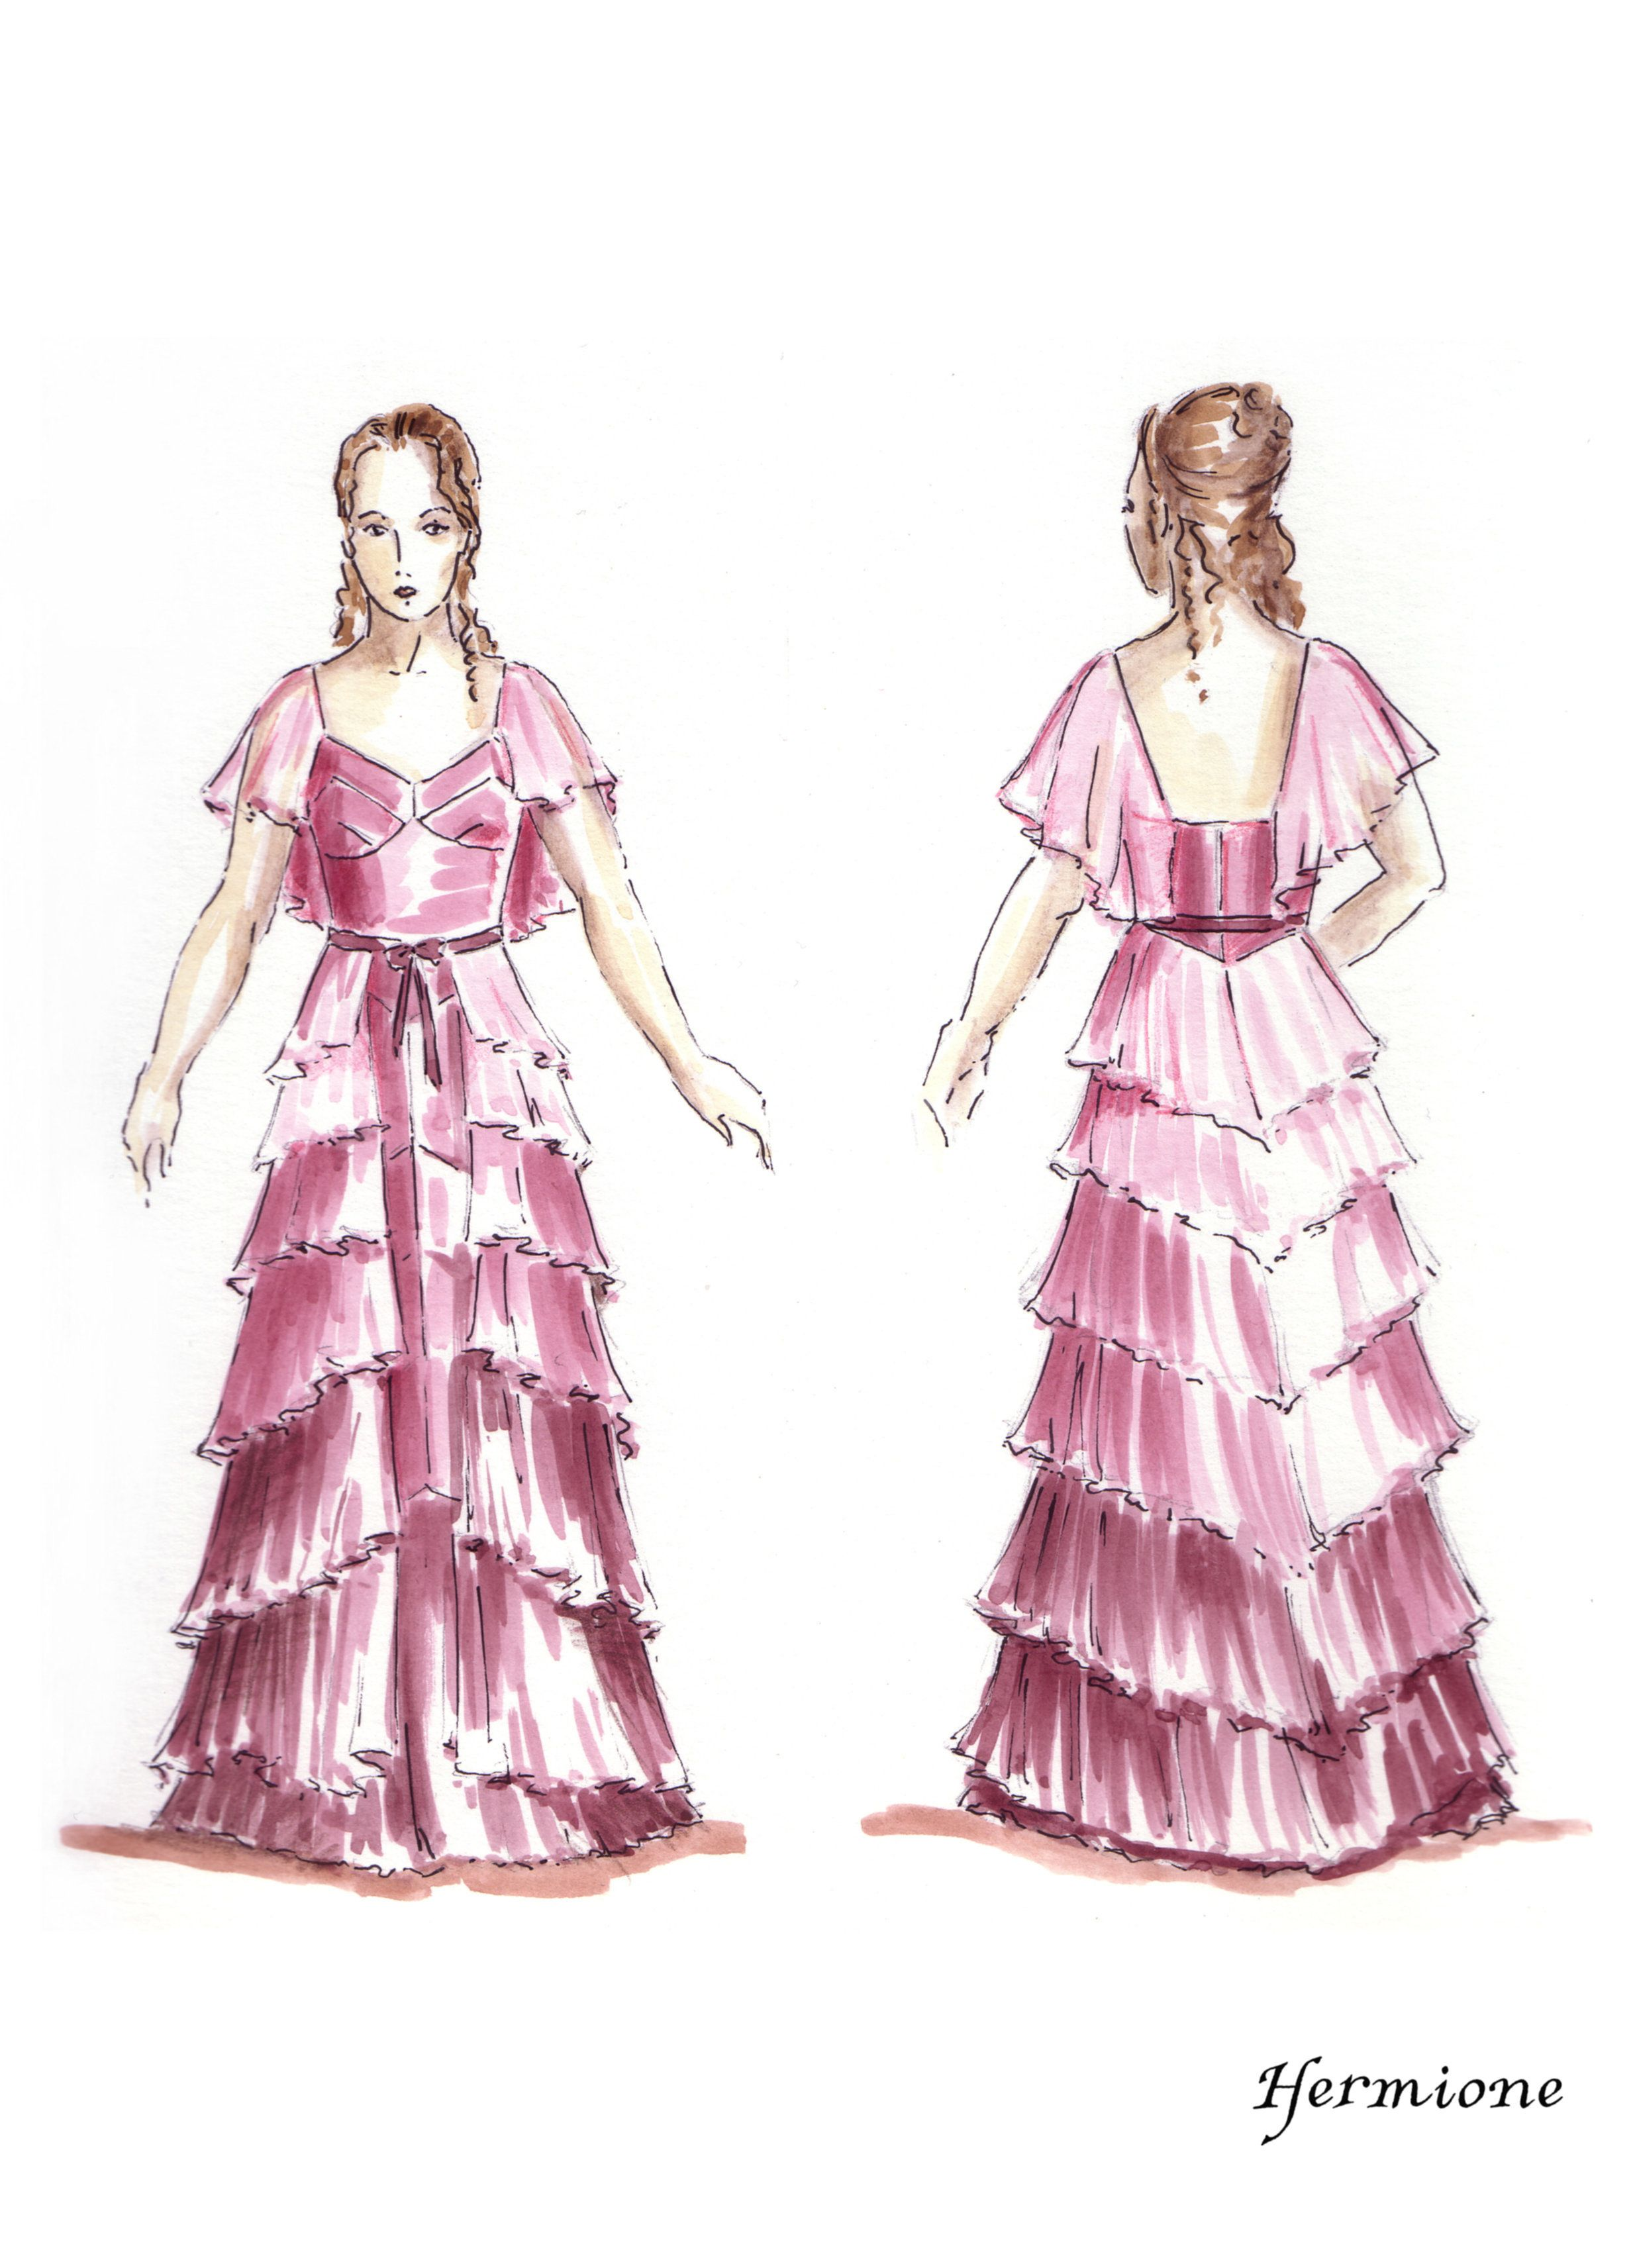 An illusration of Hermione in her Yule Ball dress